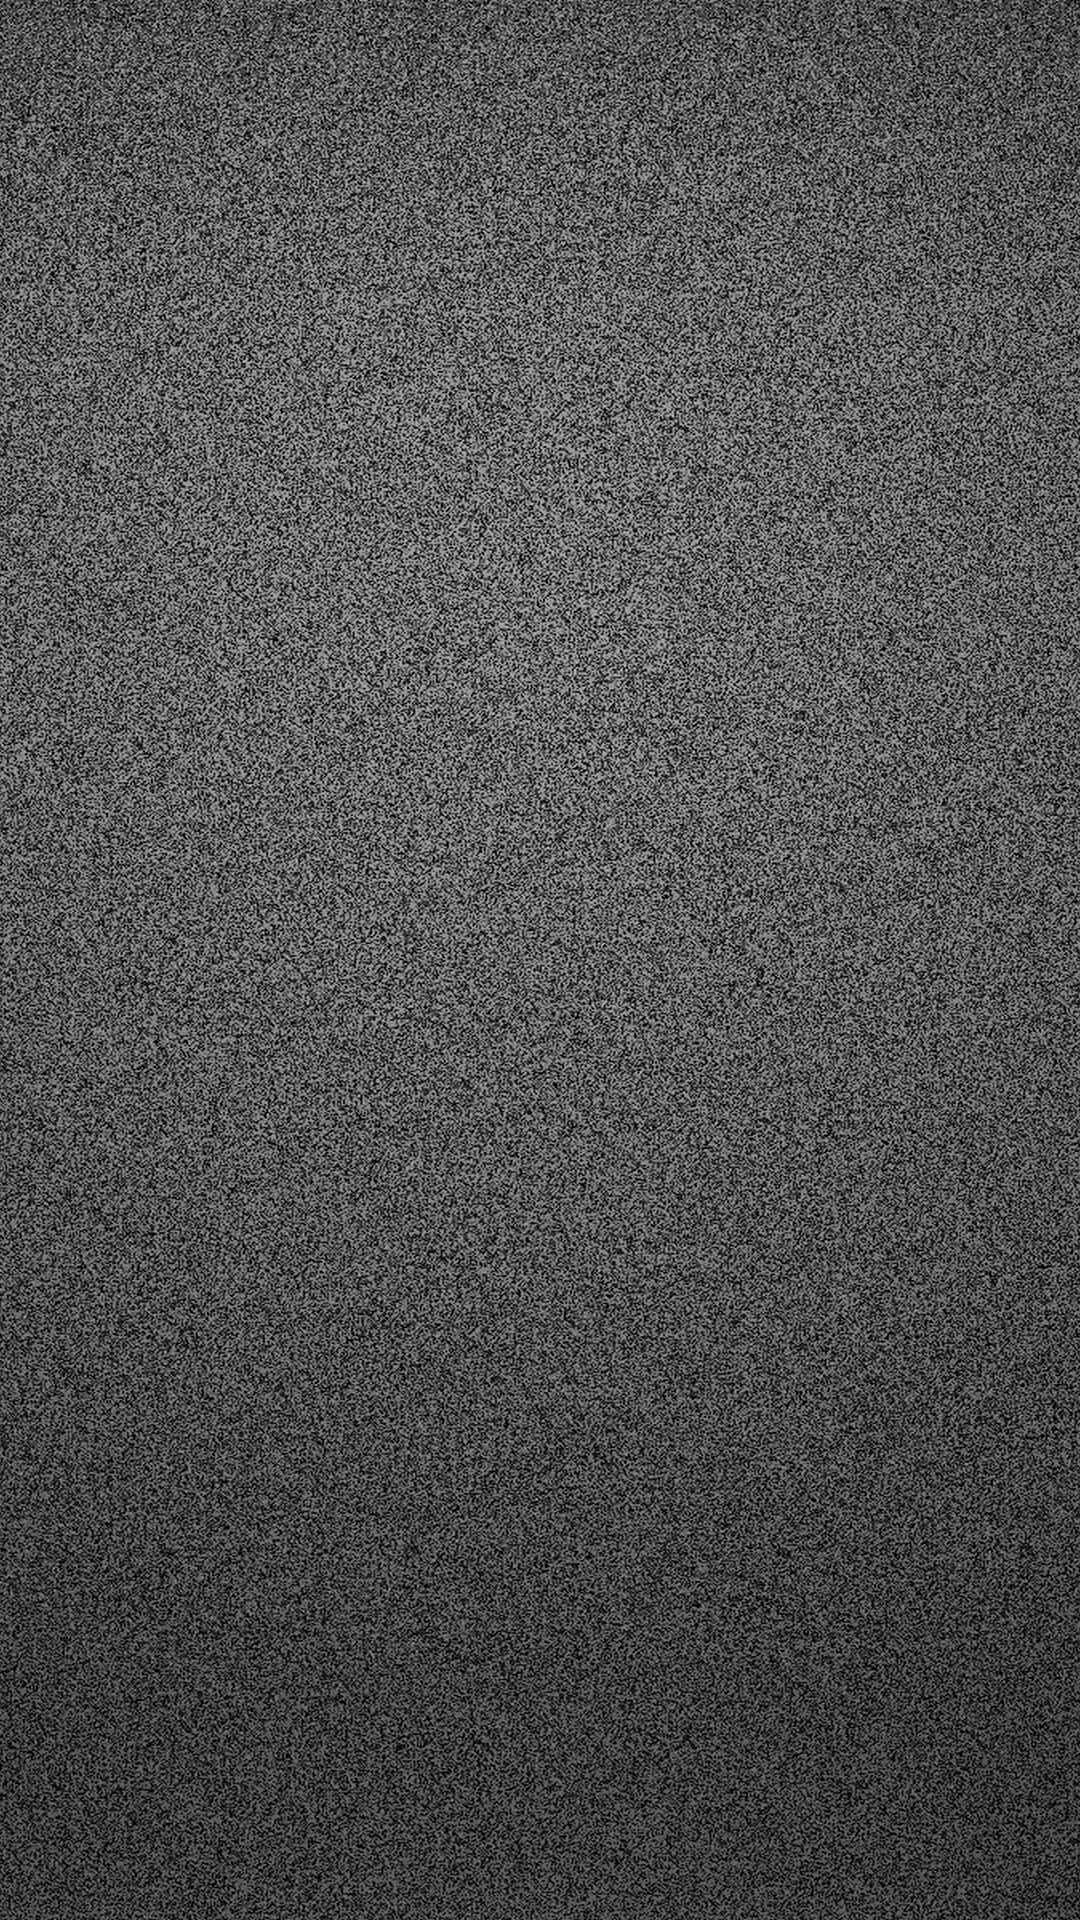 Get Great Grey And Black Wallpaper Iphone for iPhone 11 Pro Free